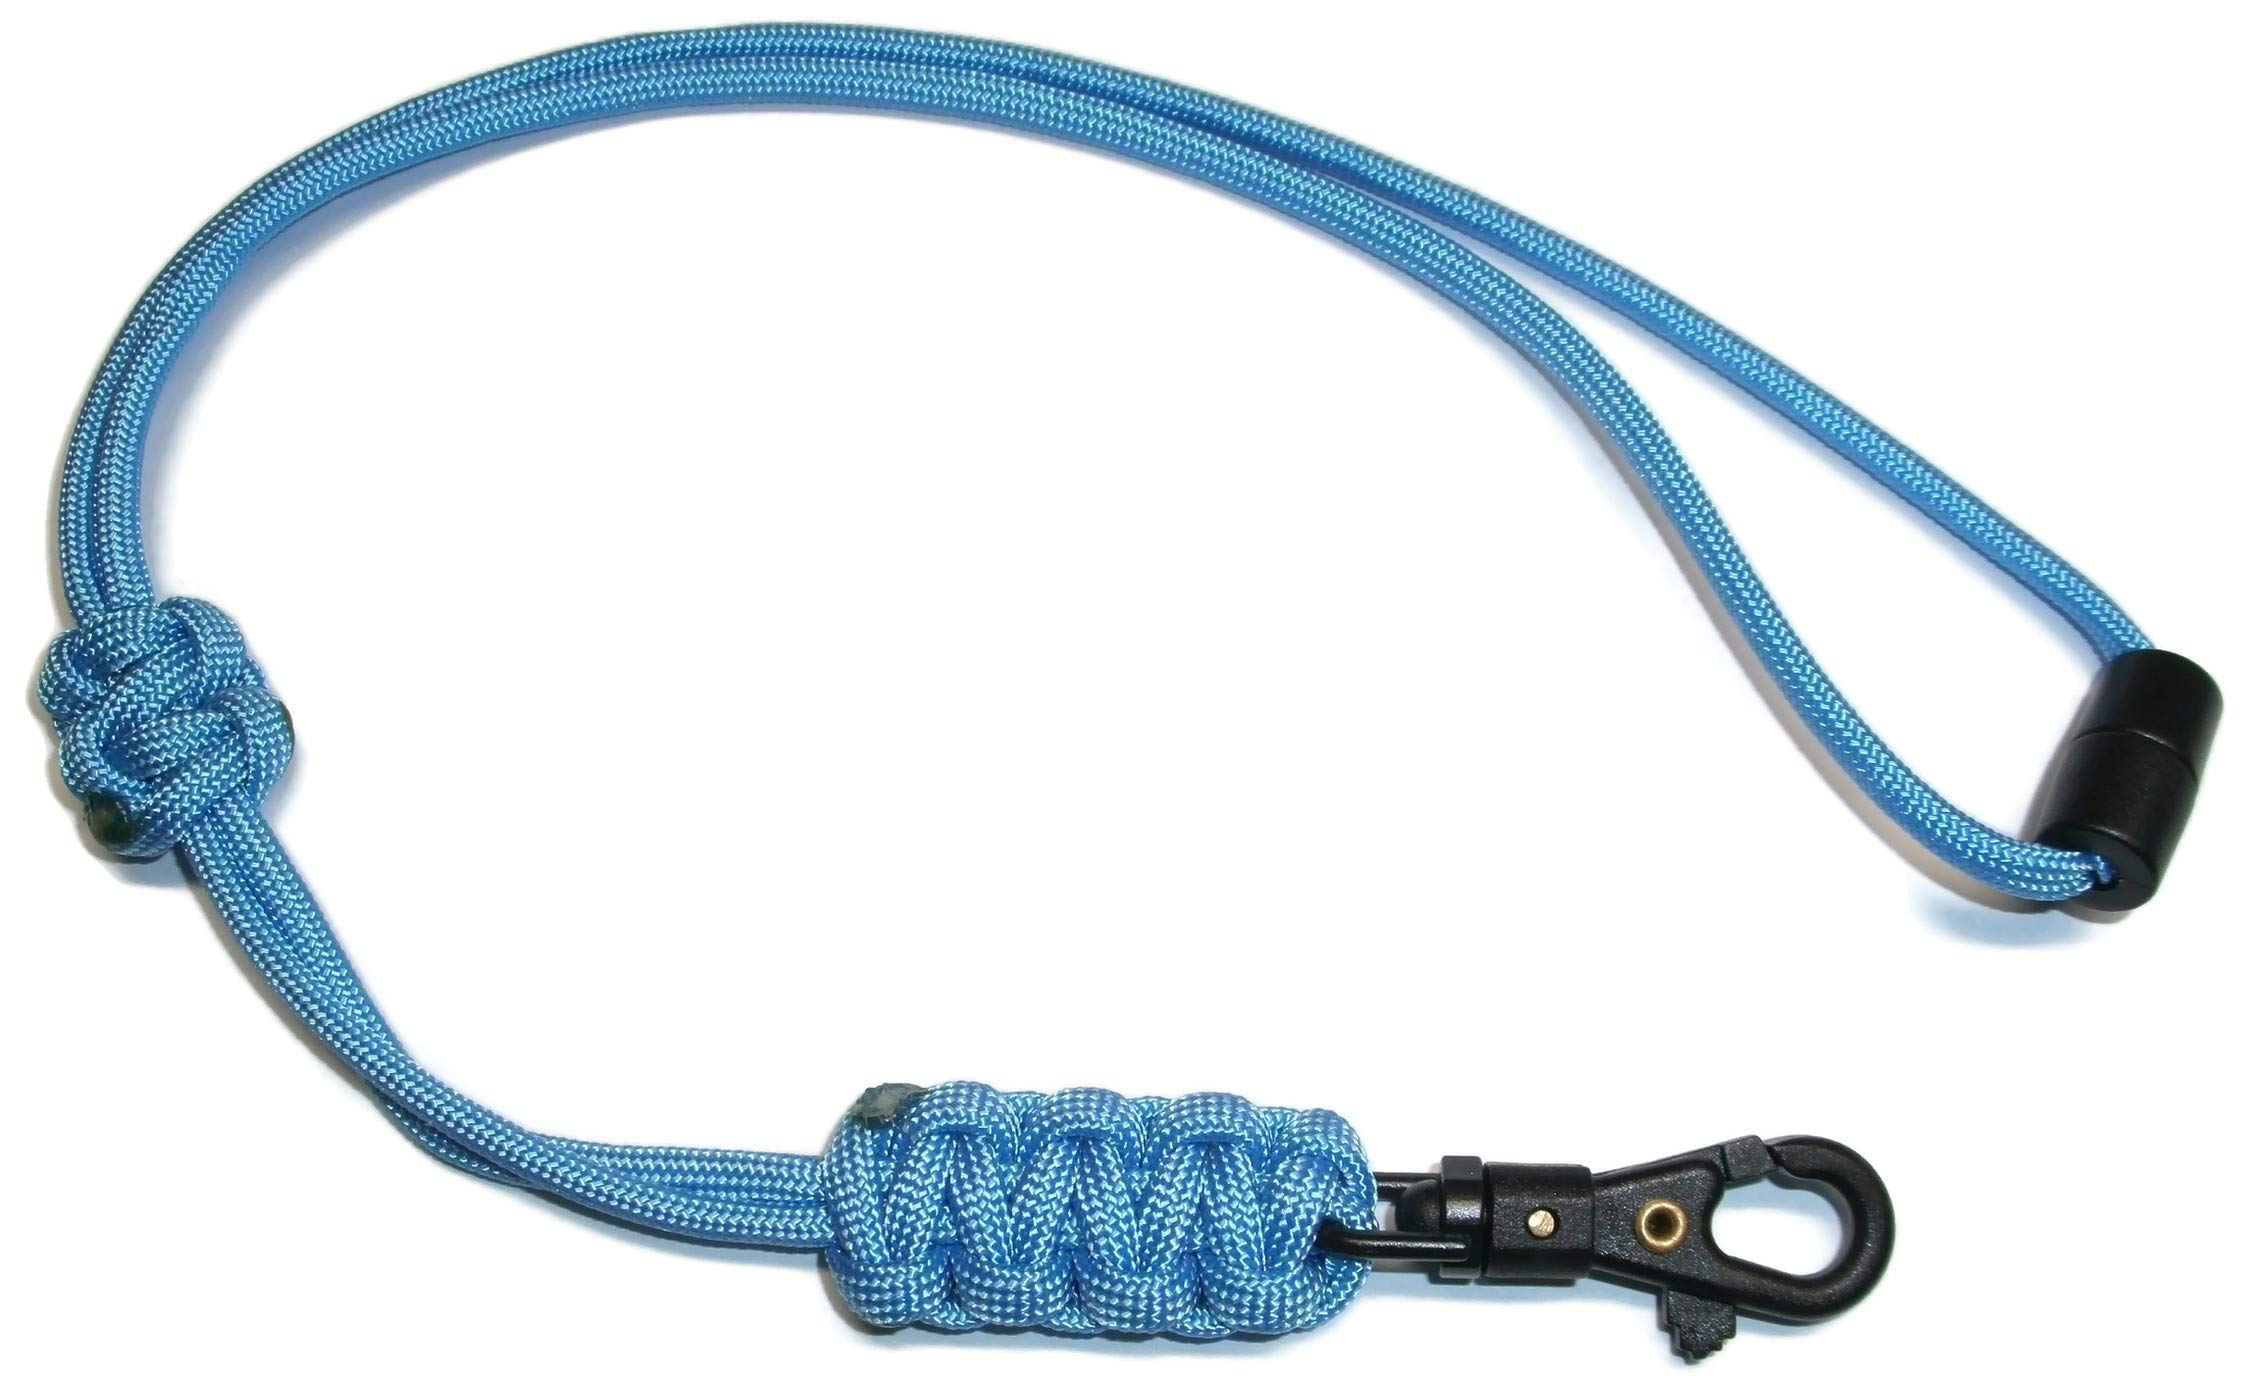 RedVex Paracord Cobra Neck Lanyard with Safety Break-Away and Adjuster - ABS Clip - Choose Your Color and Size (Customization Available) (18 inch, Baby Blue)